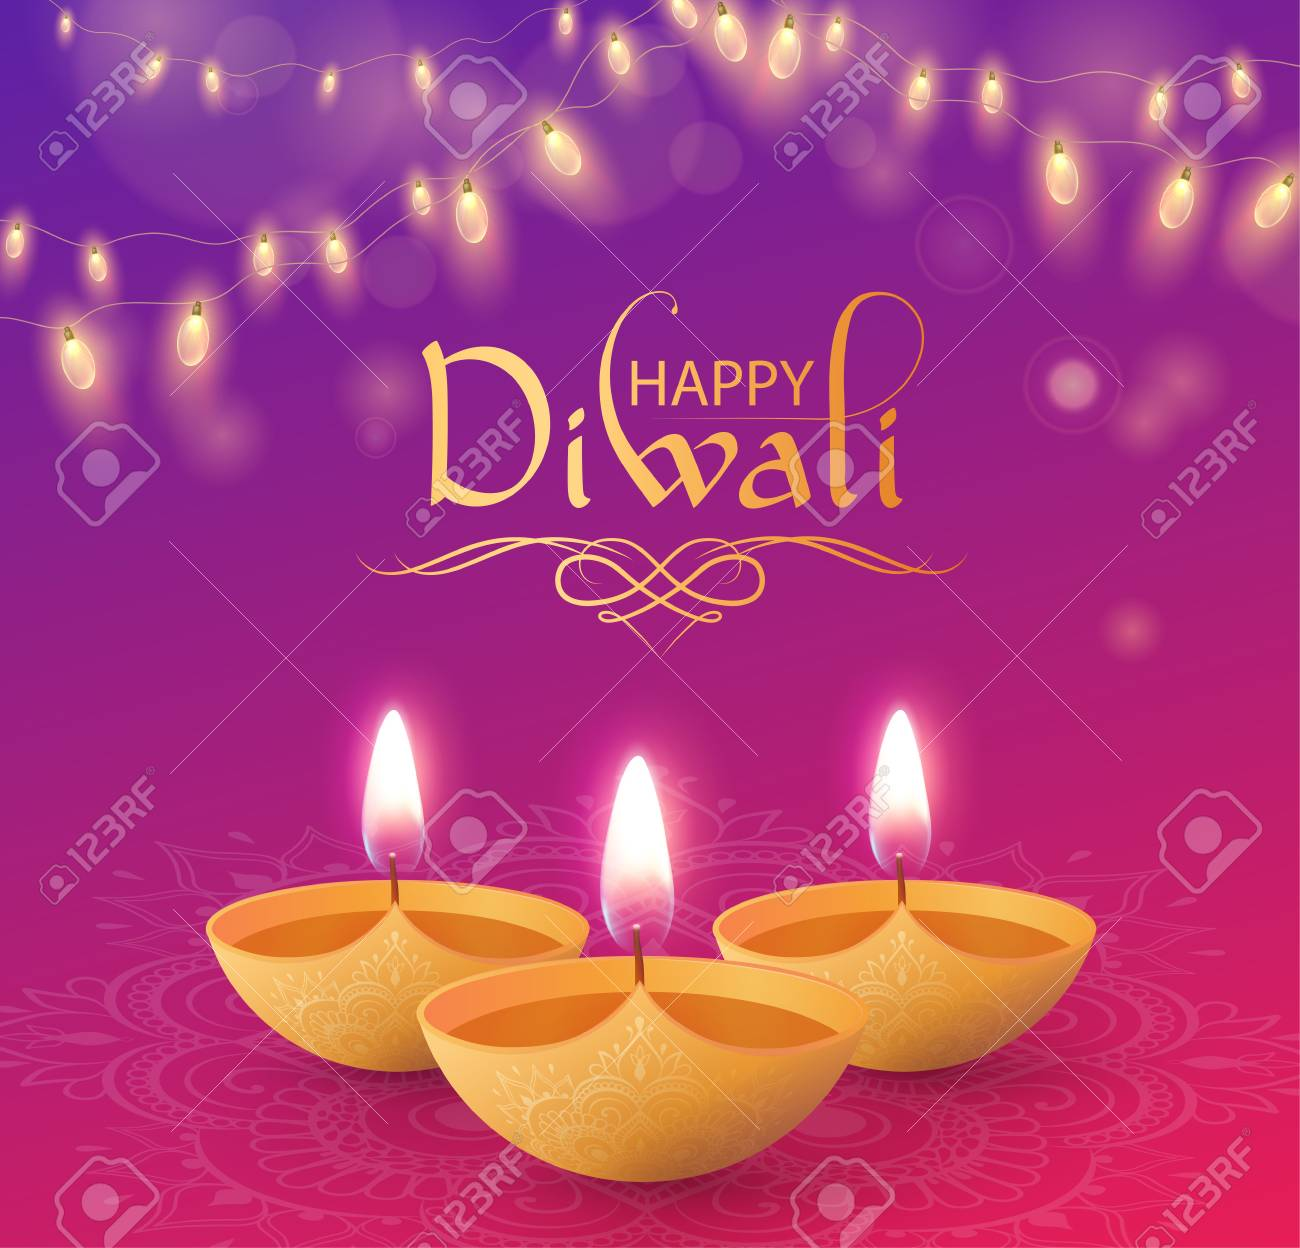 Happy Diwali shiny greeting card with oil lamps and decorative lanterns. Vector background. - 109413333